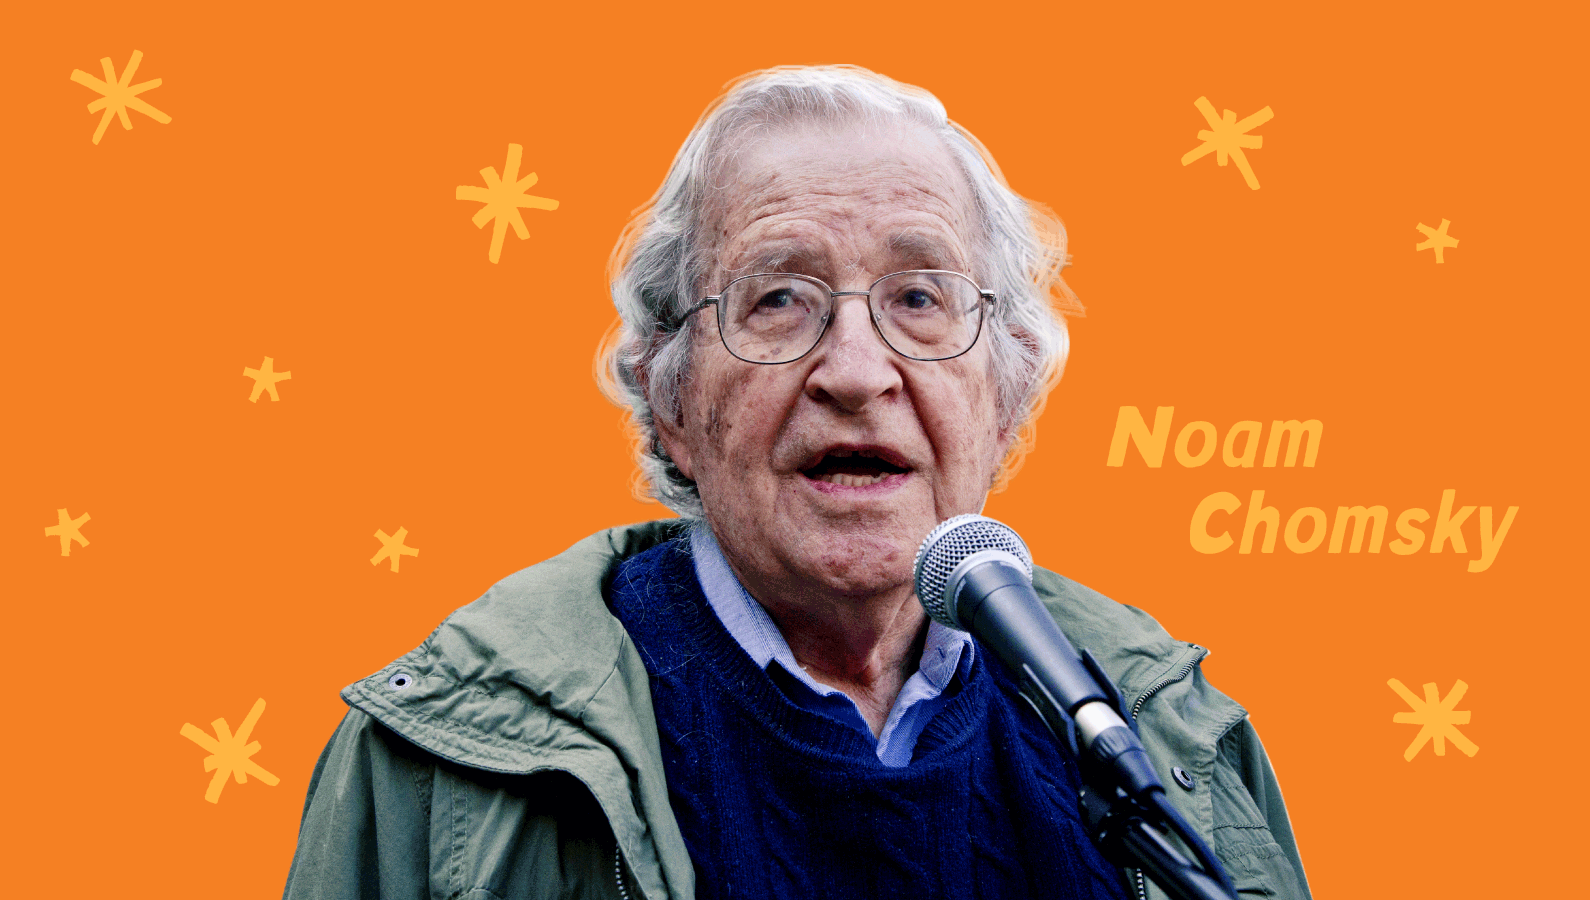 Who Is Noam Chomsky, and What Is His Contribution to Linguistics?